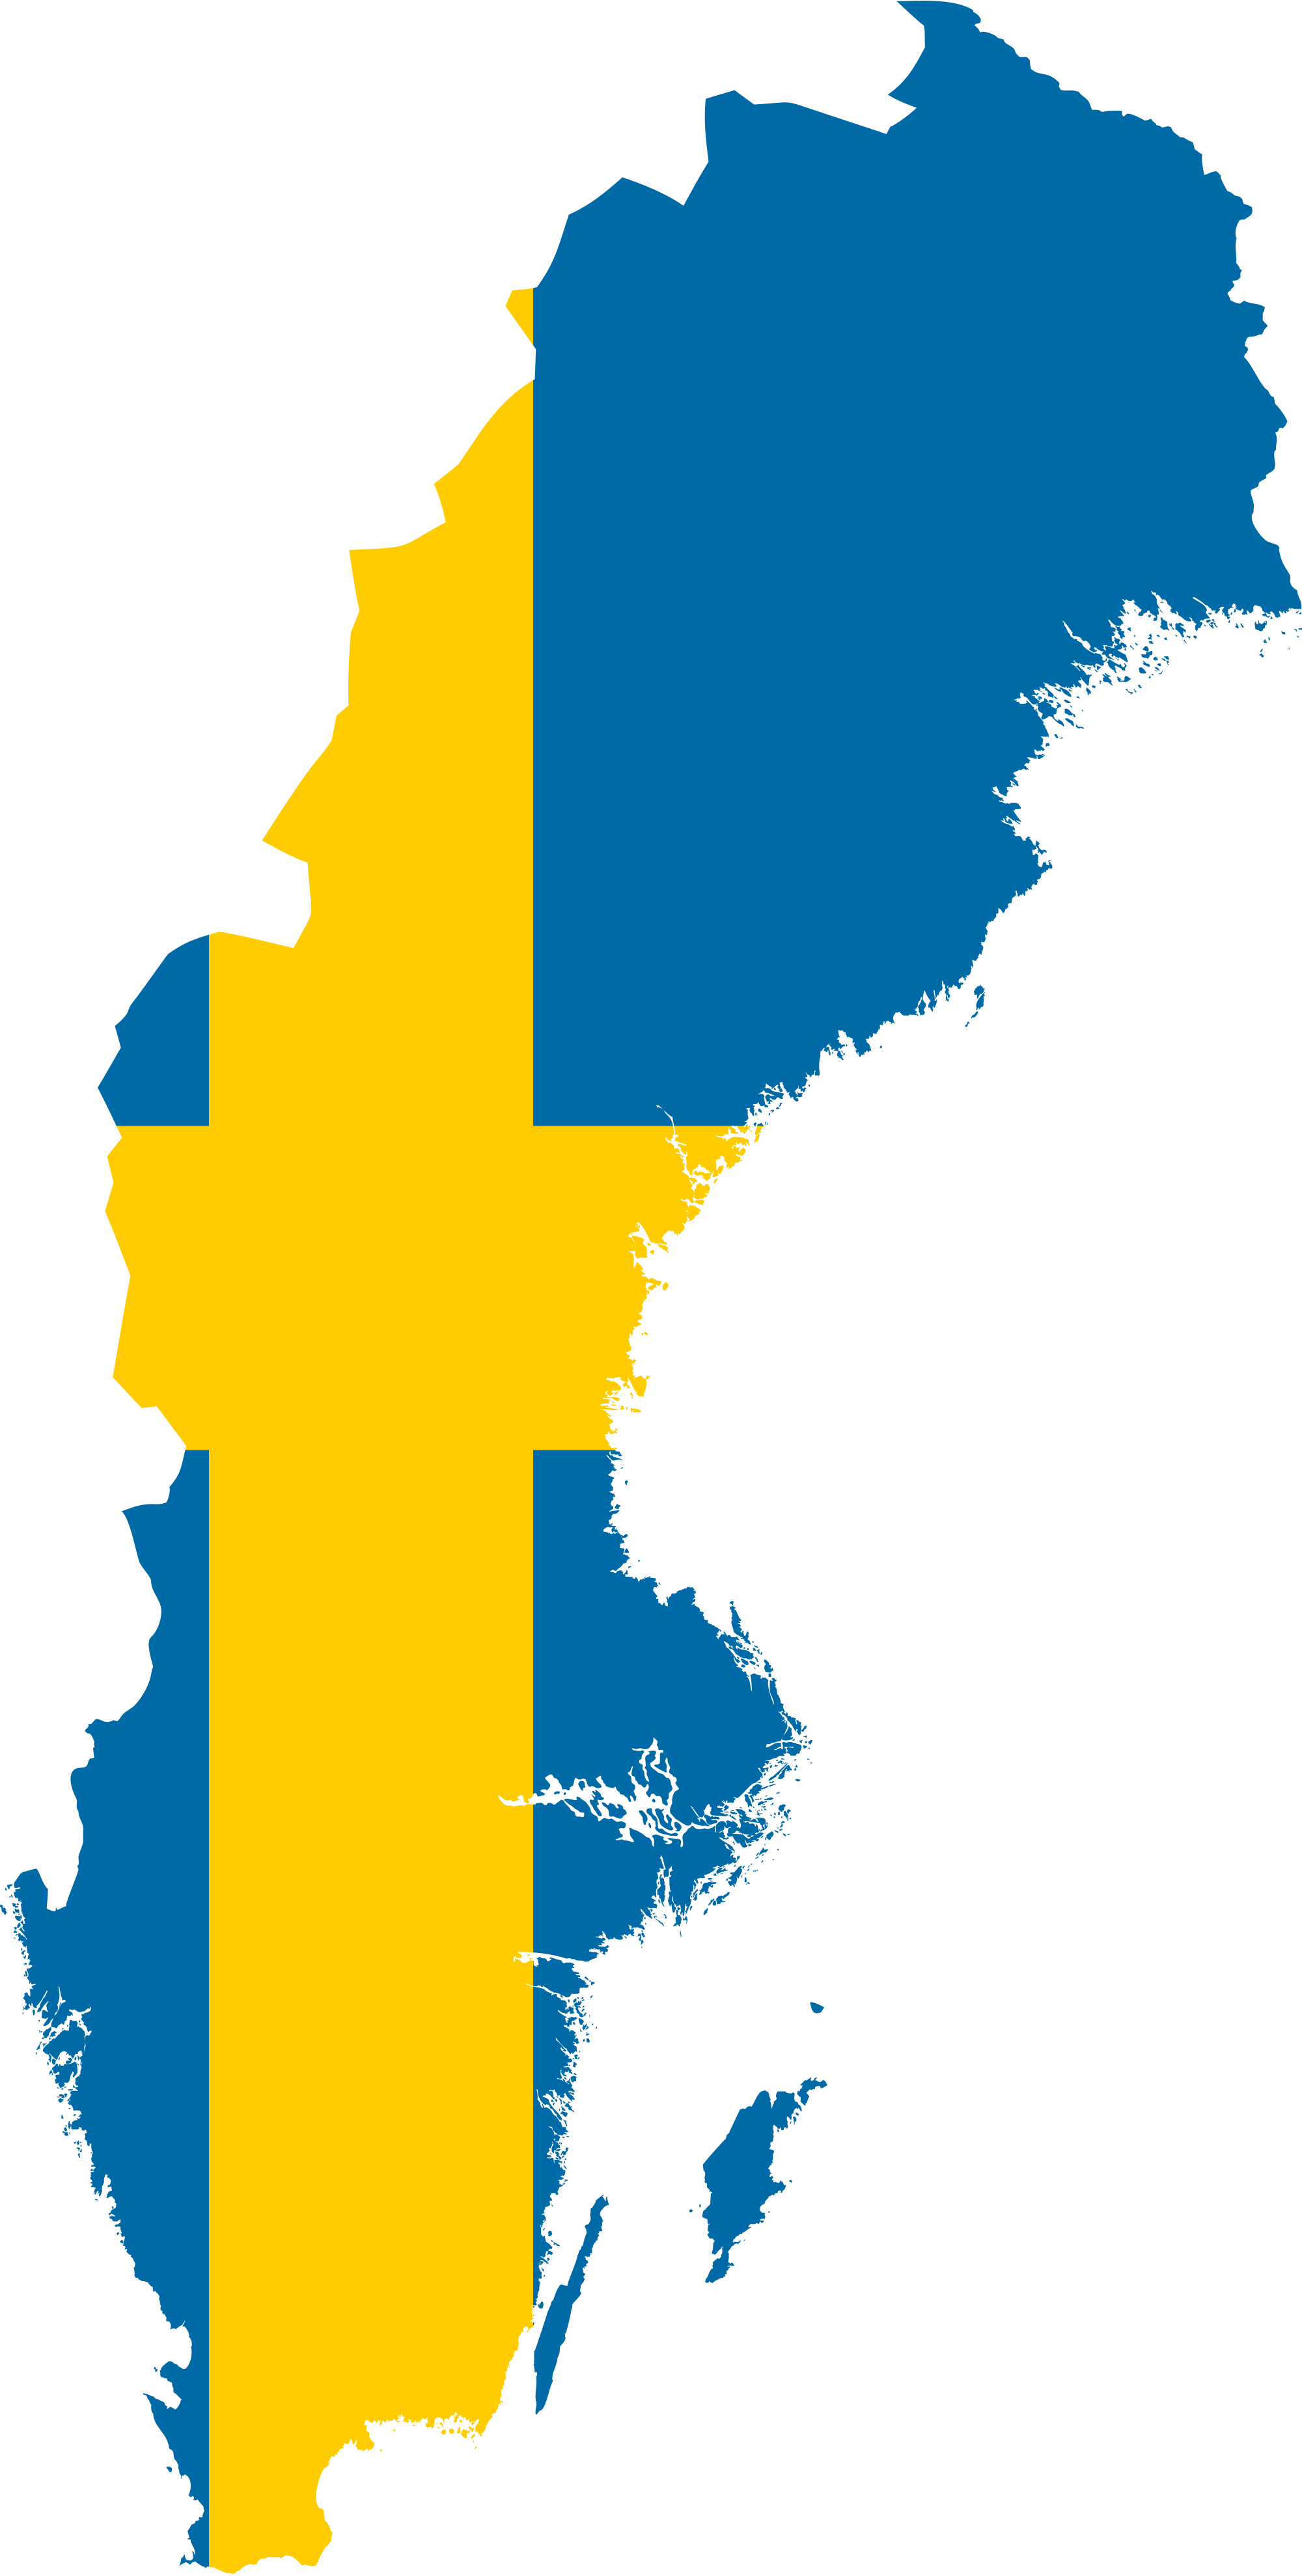 Swedish flag png. File map of sweden